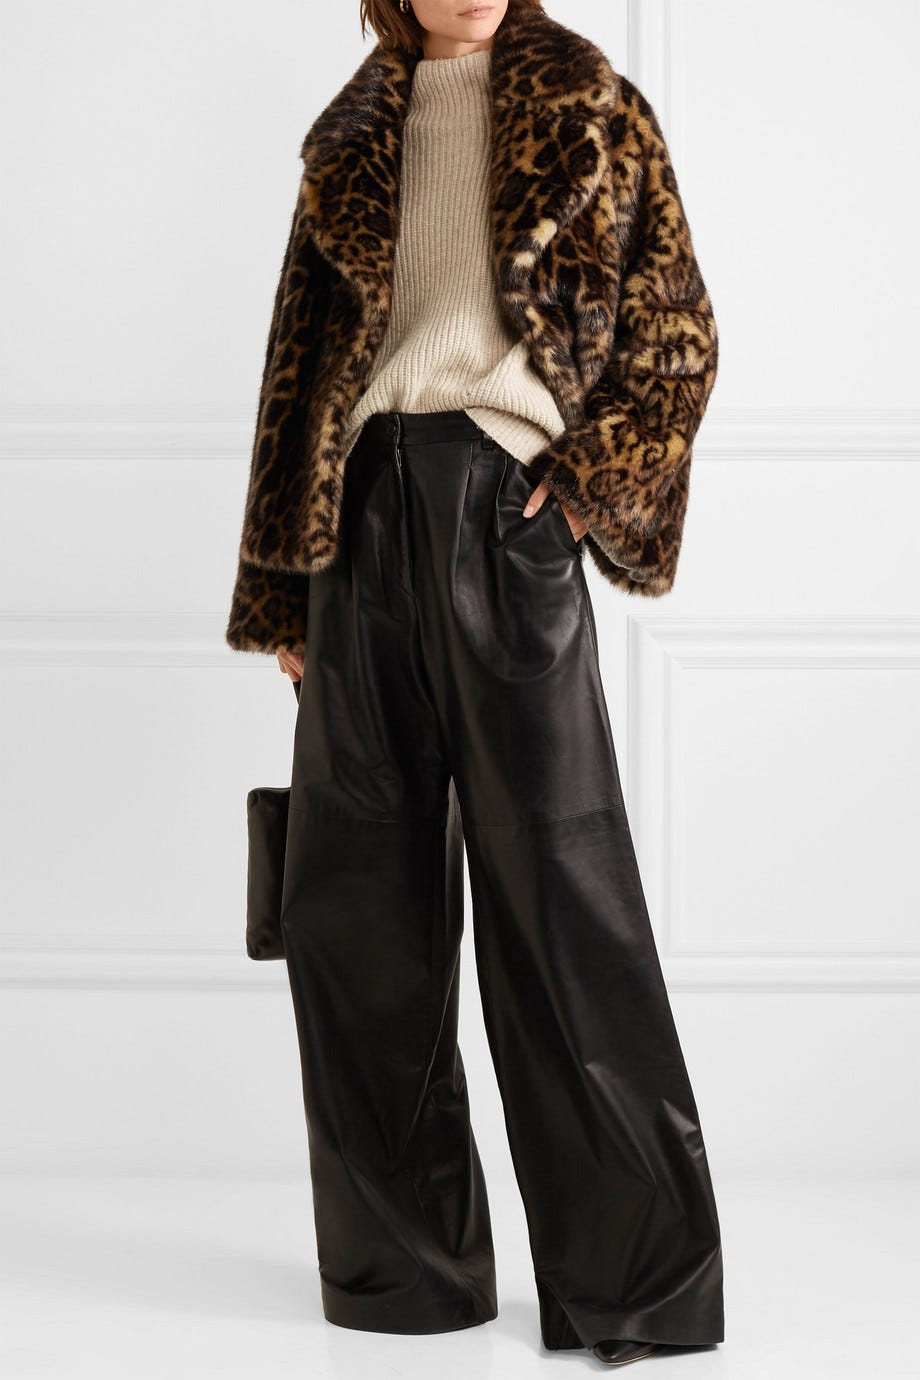 9e505e2e2c94 Best Leopard Print Coats To Keep You Warm Winter 2018